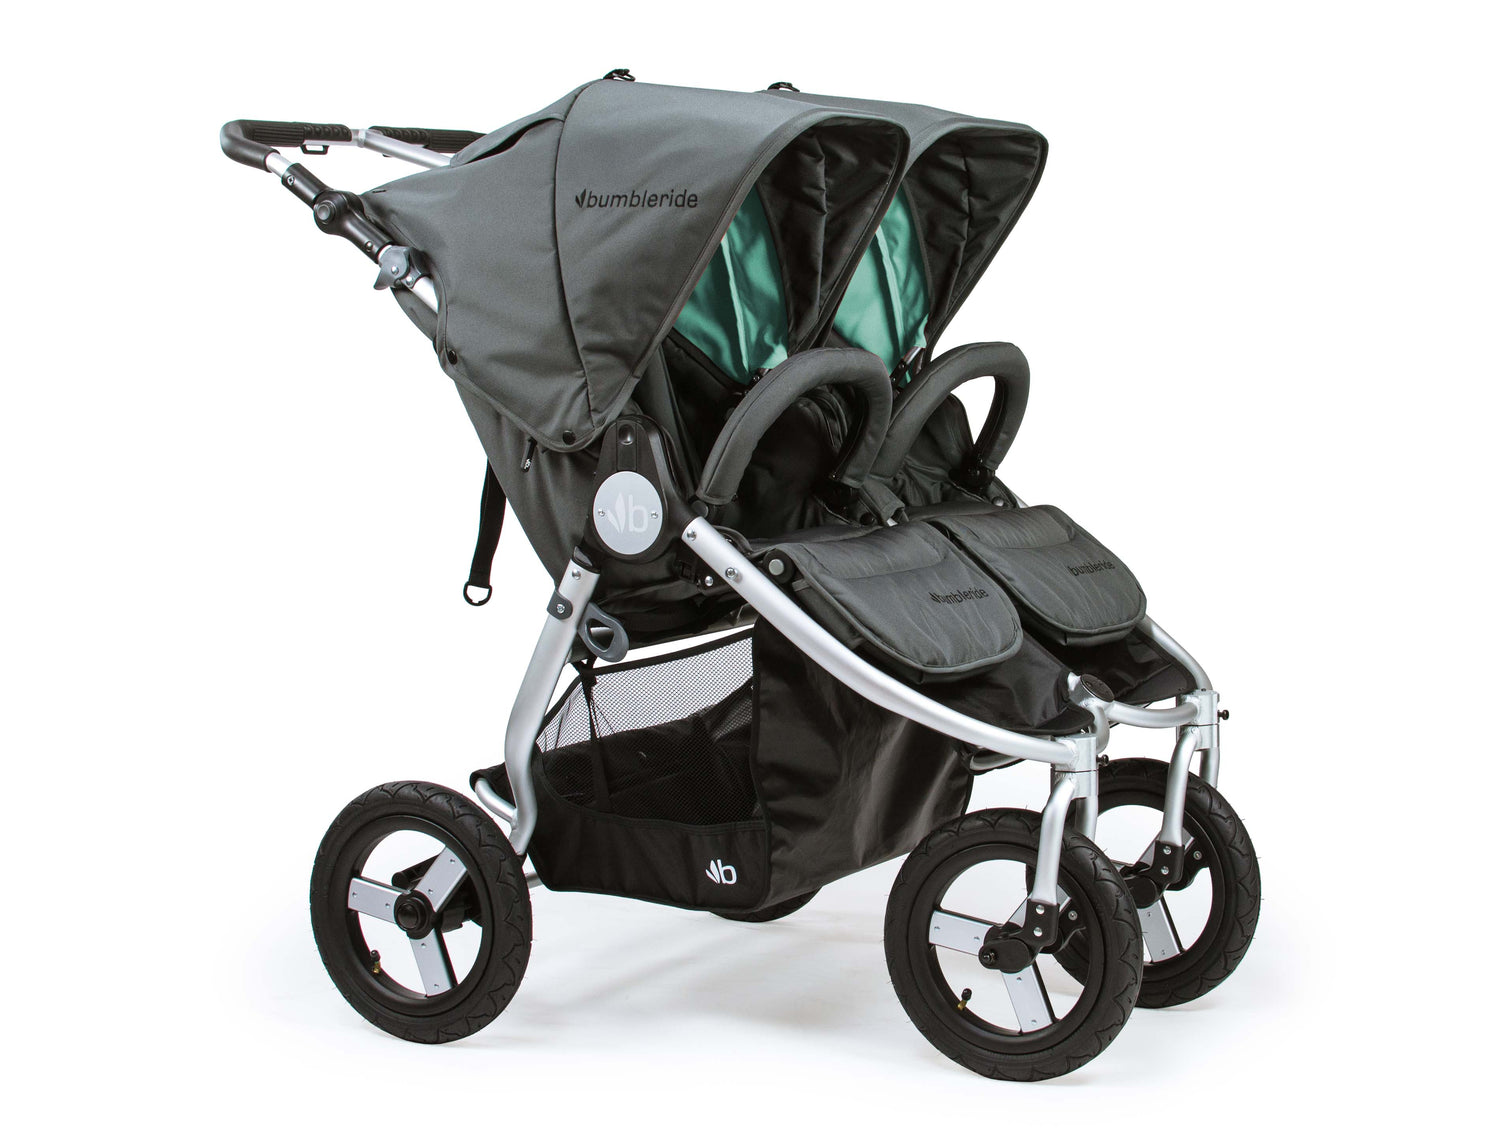 2018 Bumbleride Indie Twin Double Stroller - Dawn Grey Mint